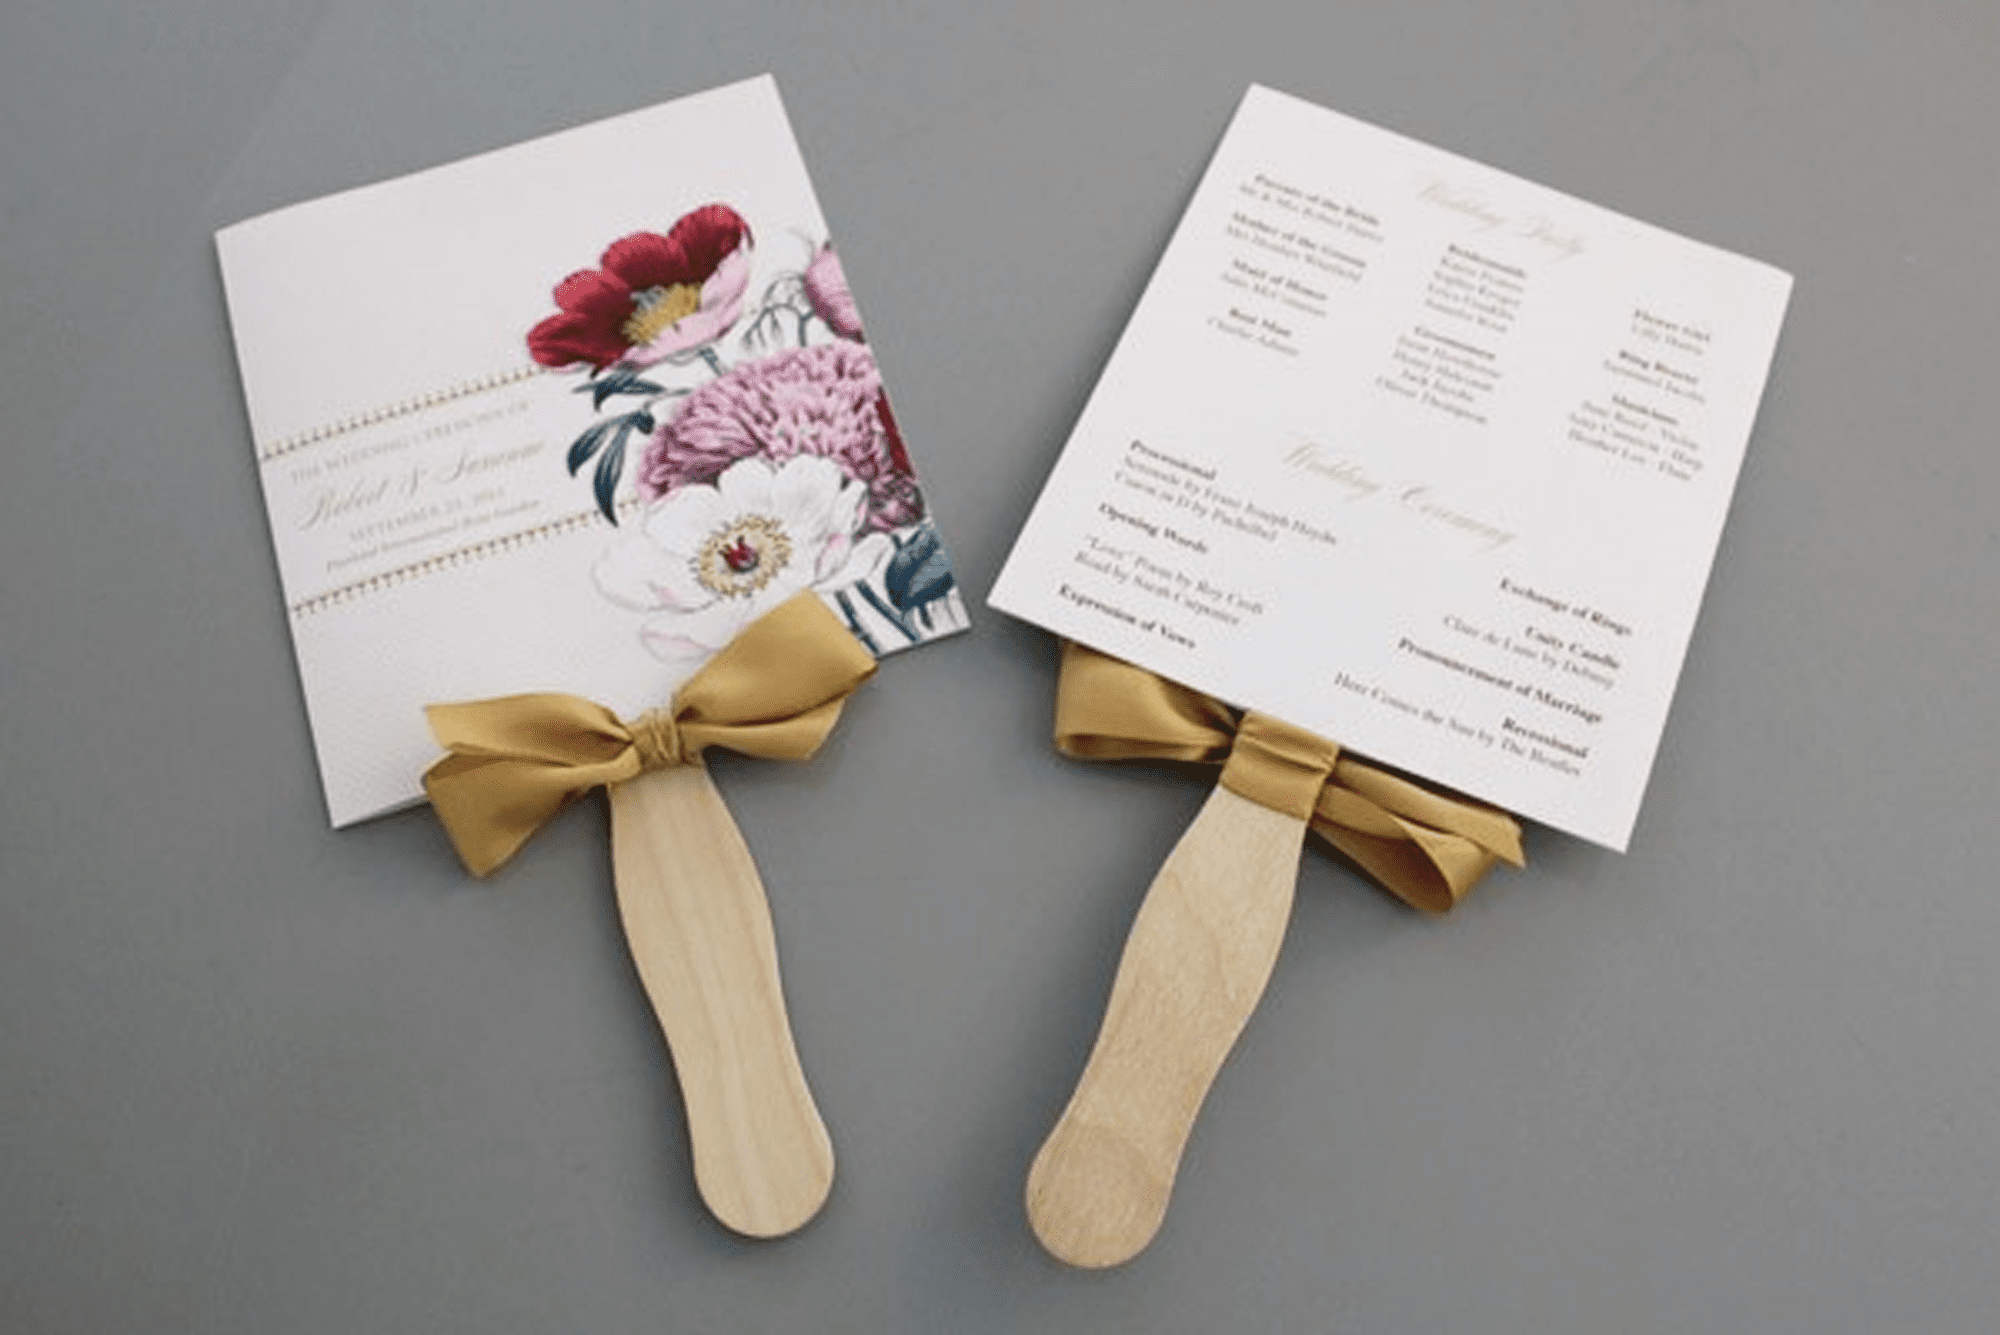 71 free wedding program templates you can customize - Free Wedding Program Fan Templates